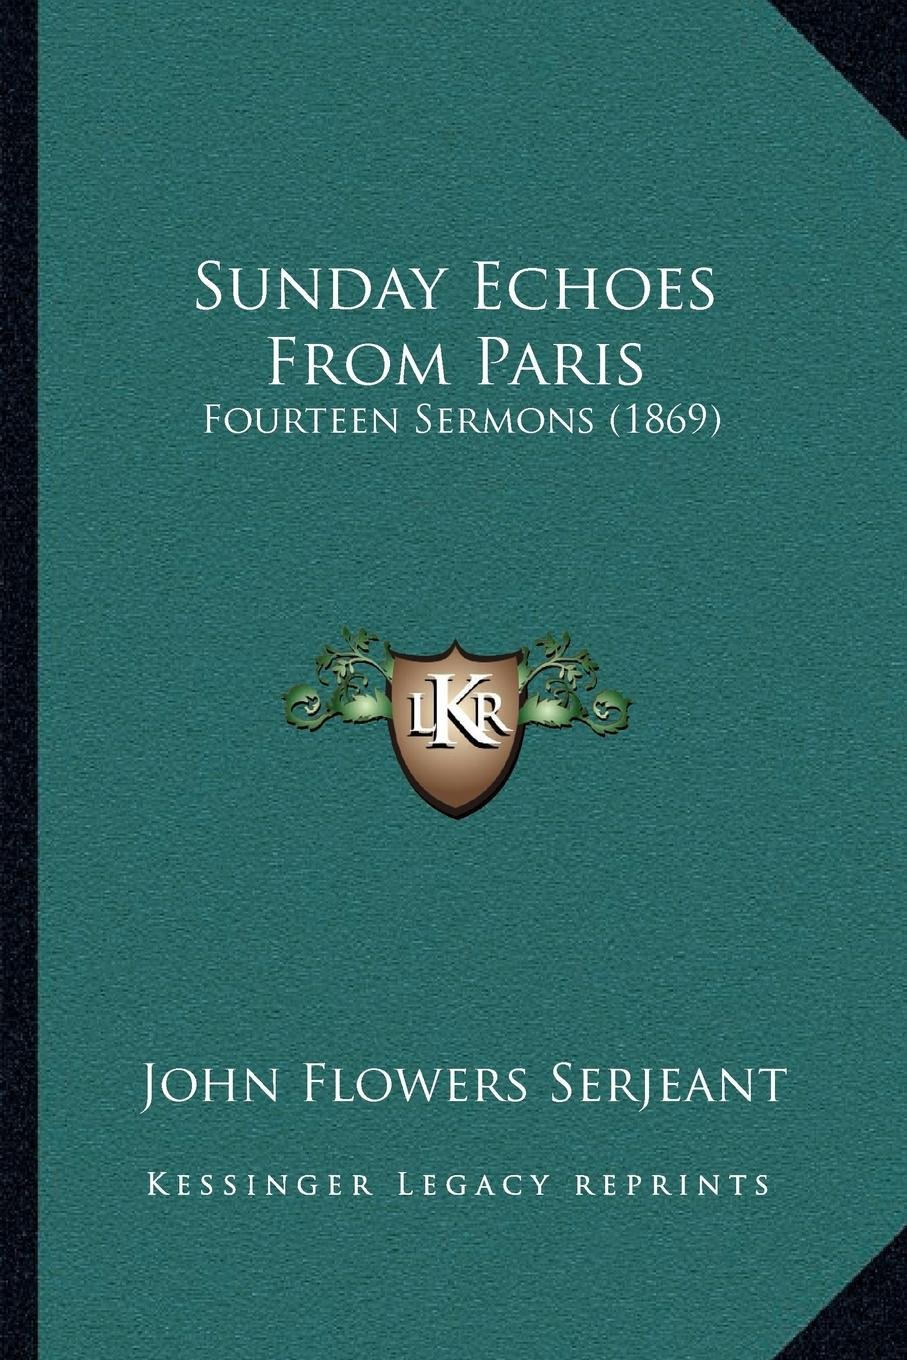 Download Sunday Echoes From Paris: Fourteen Sermons (1869) PDF